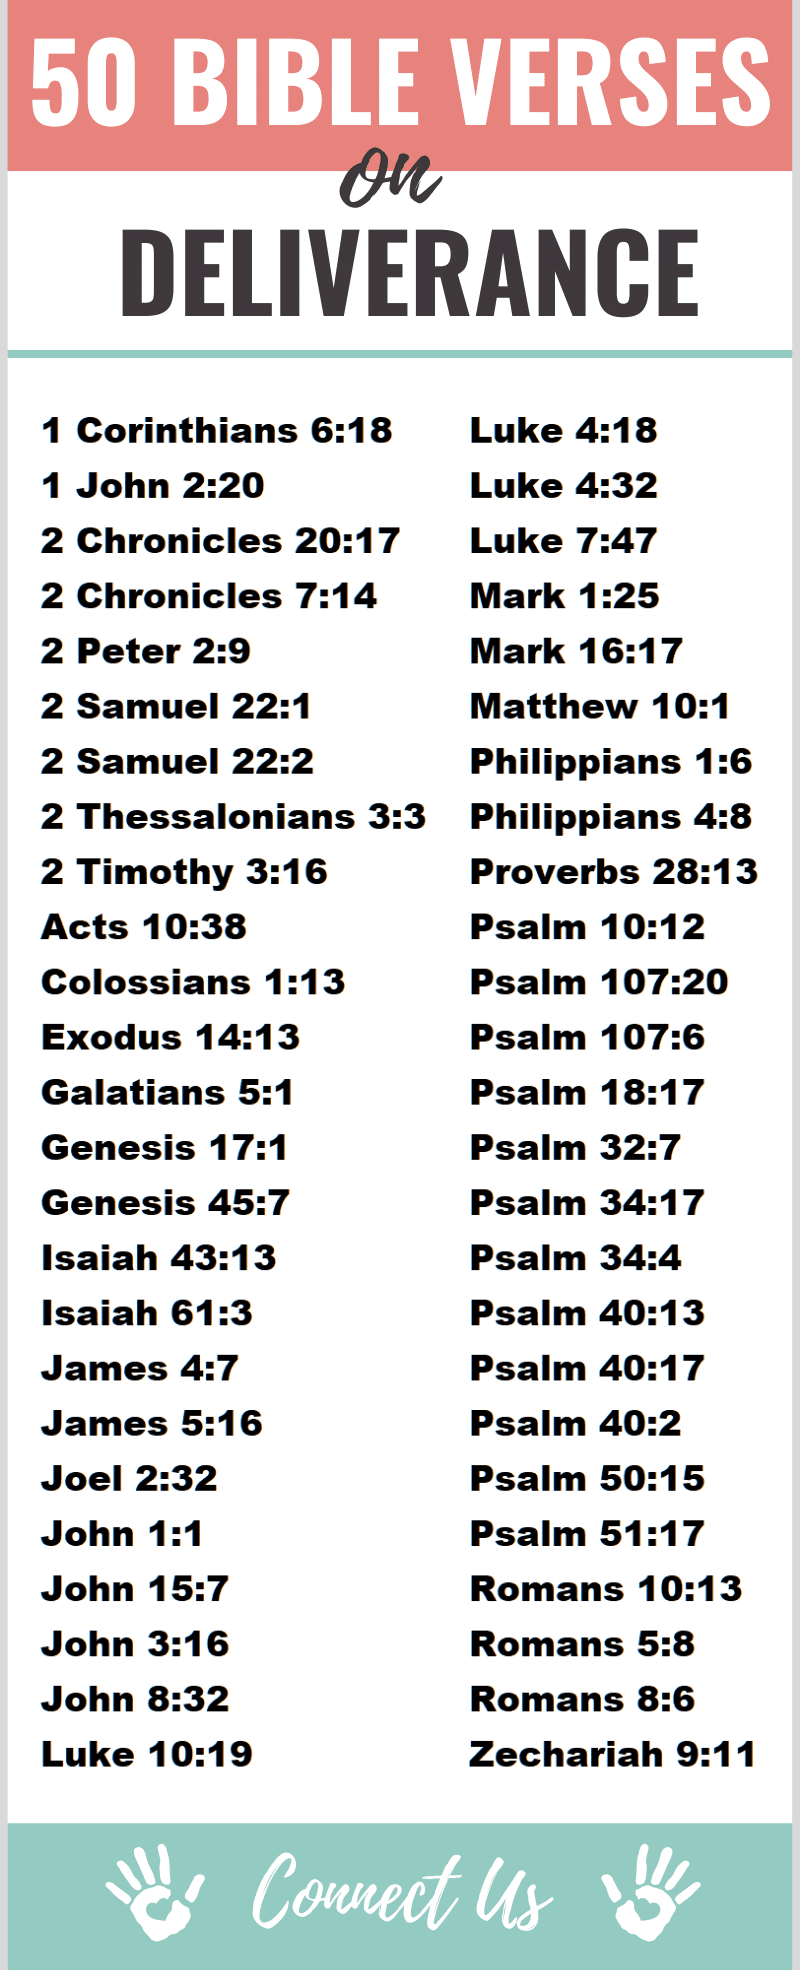 Bible Verses on Deliverance